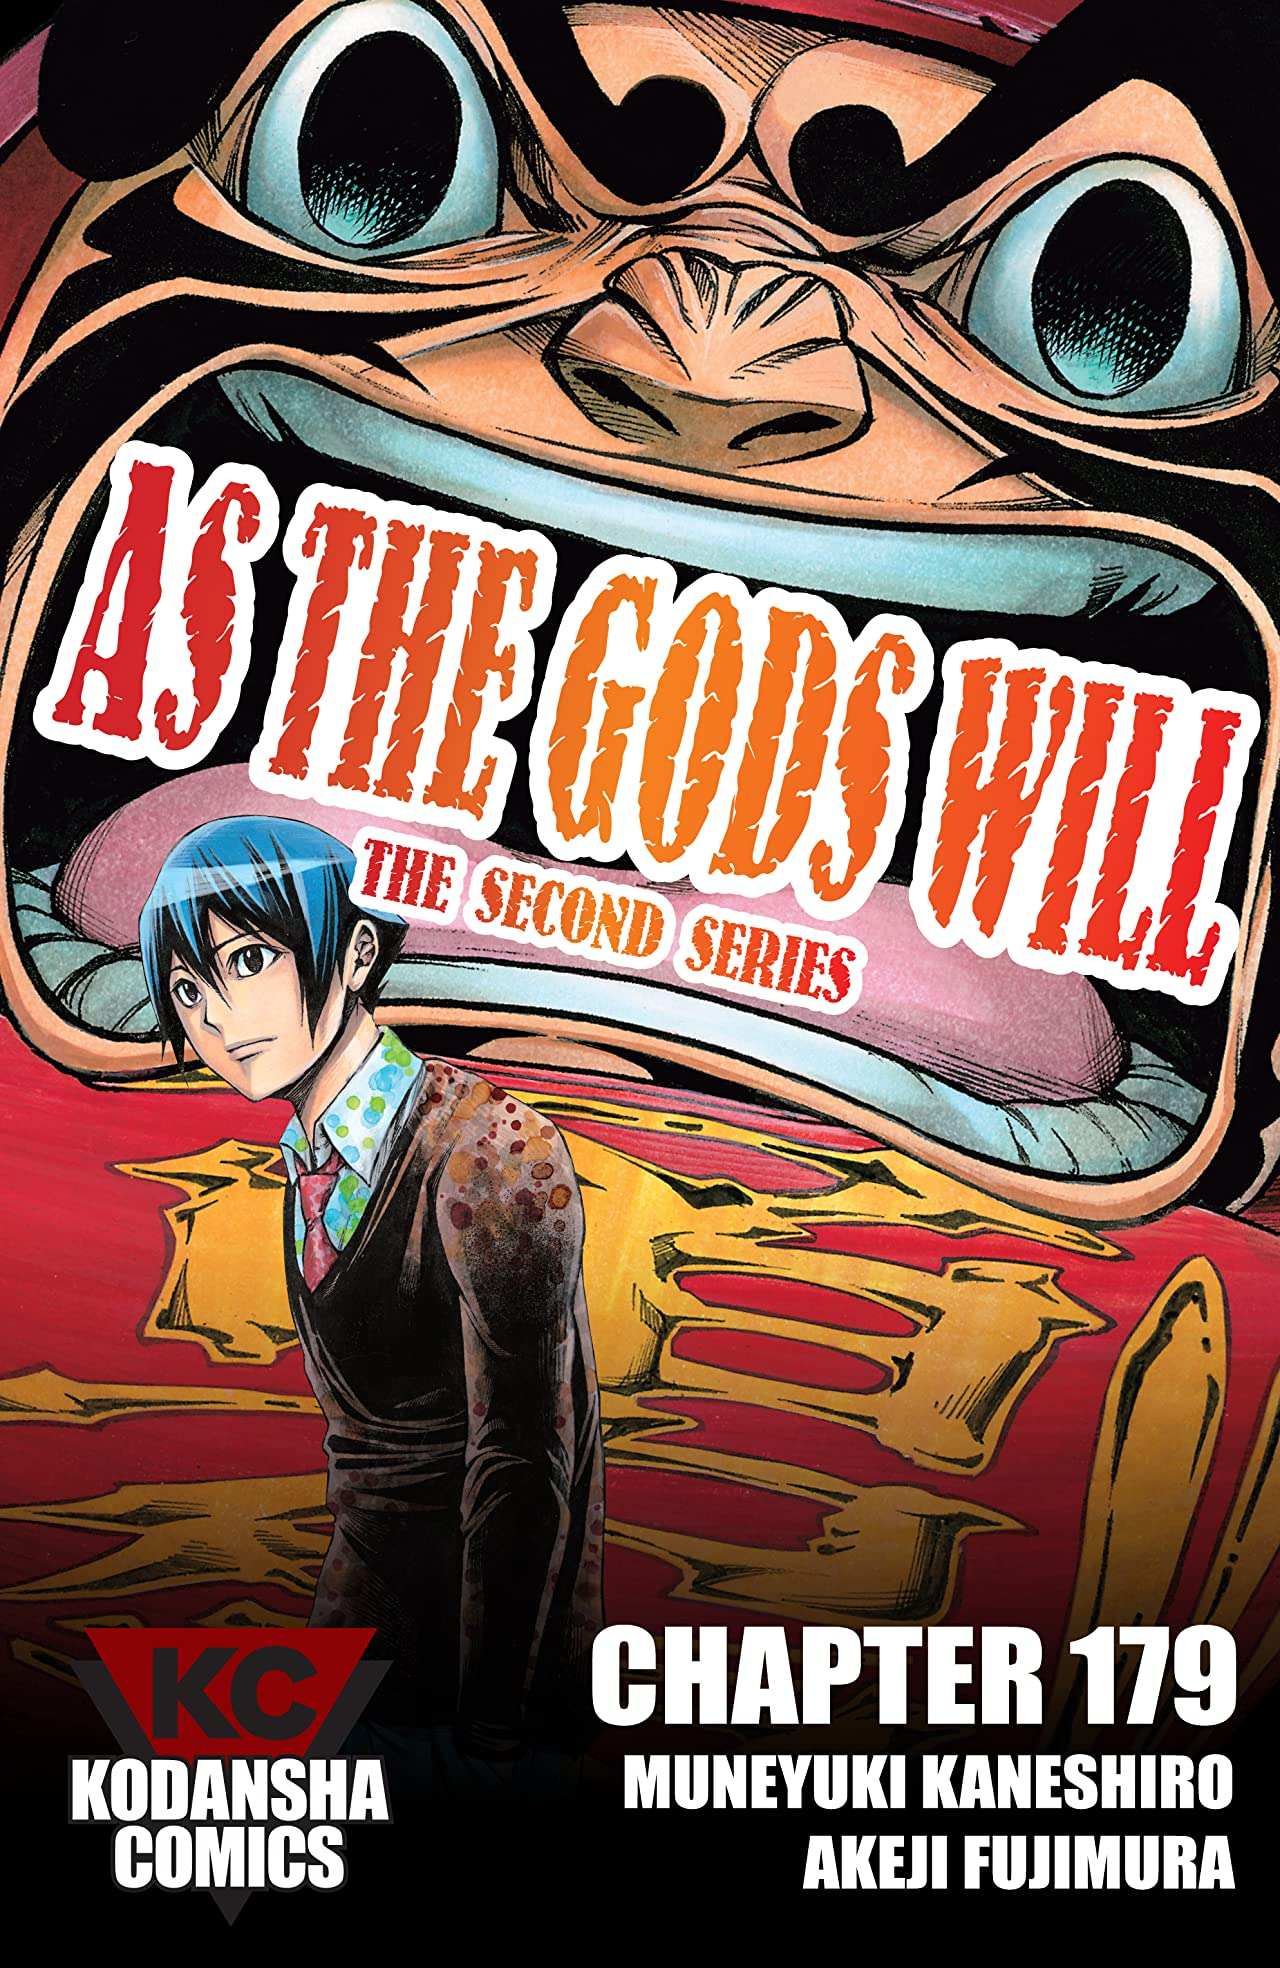 As The Gods Will: The Second Series #179